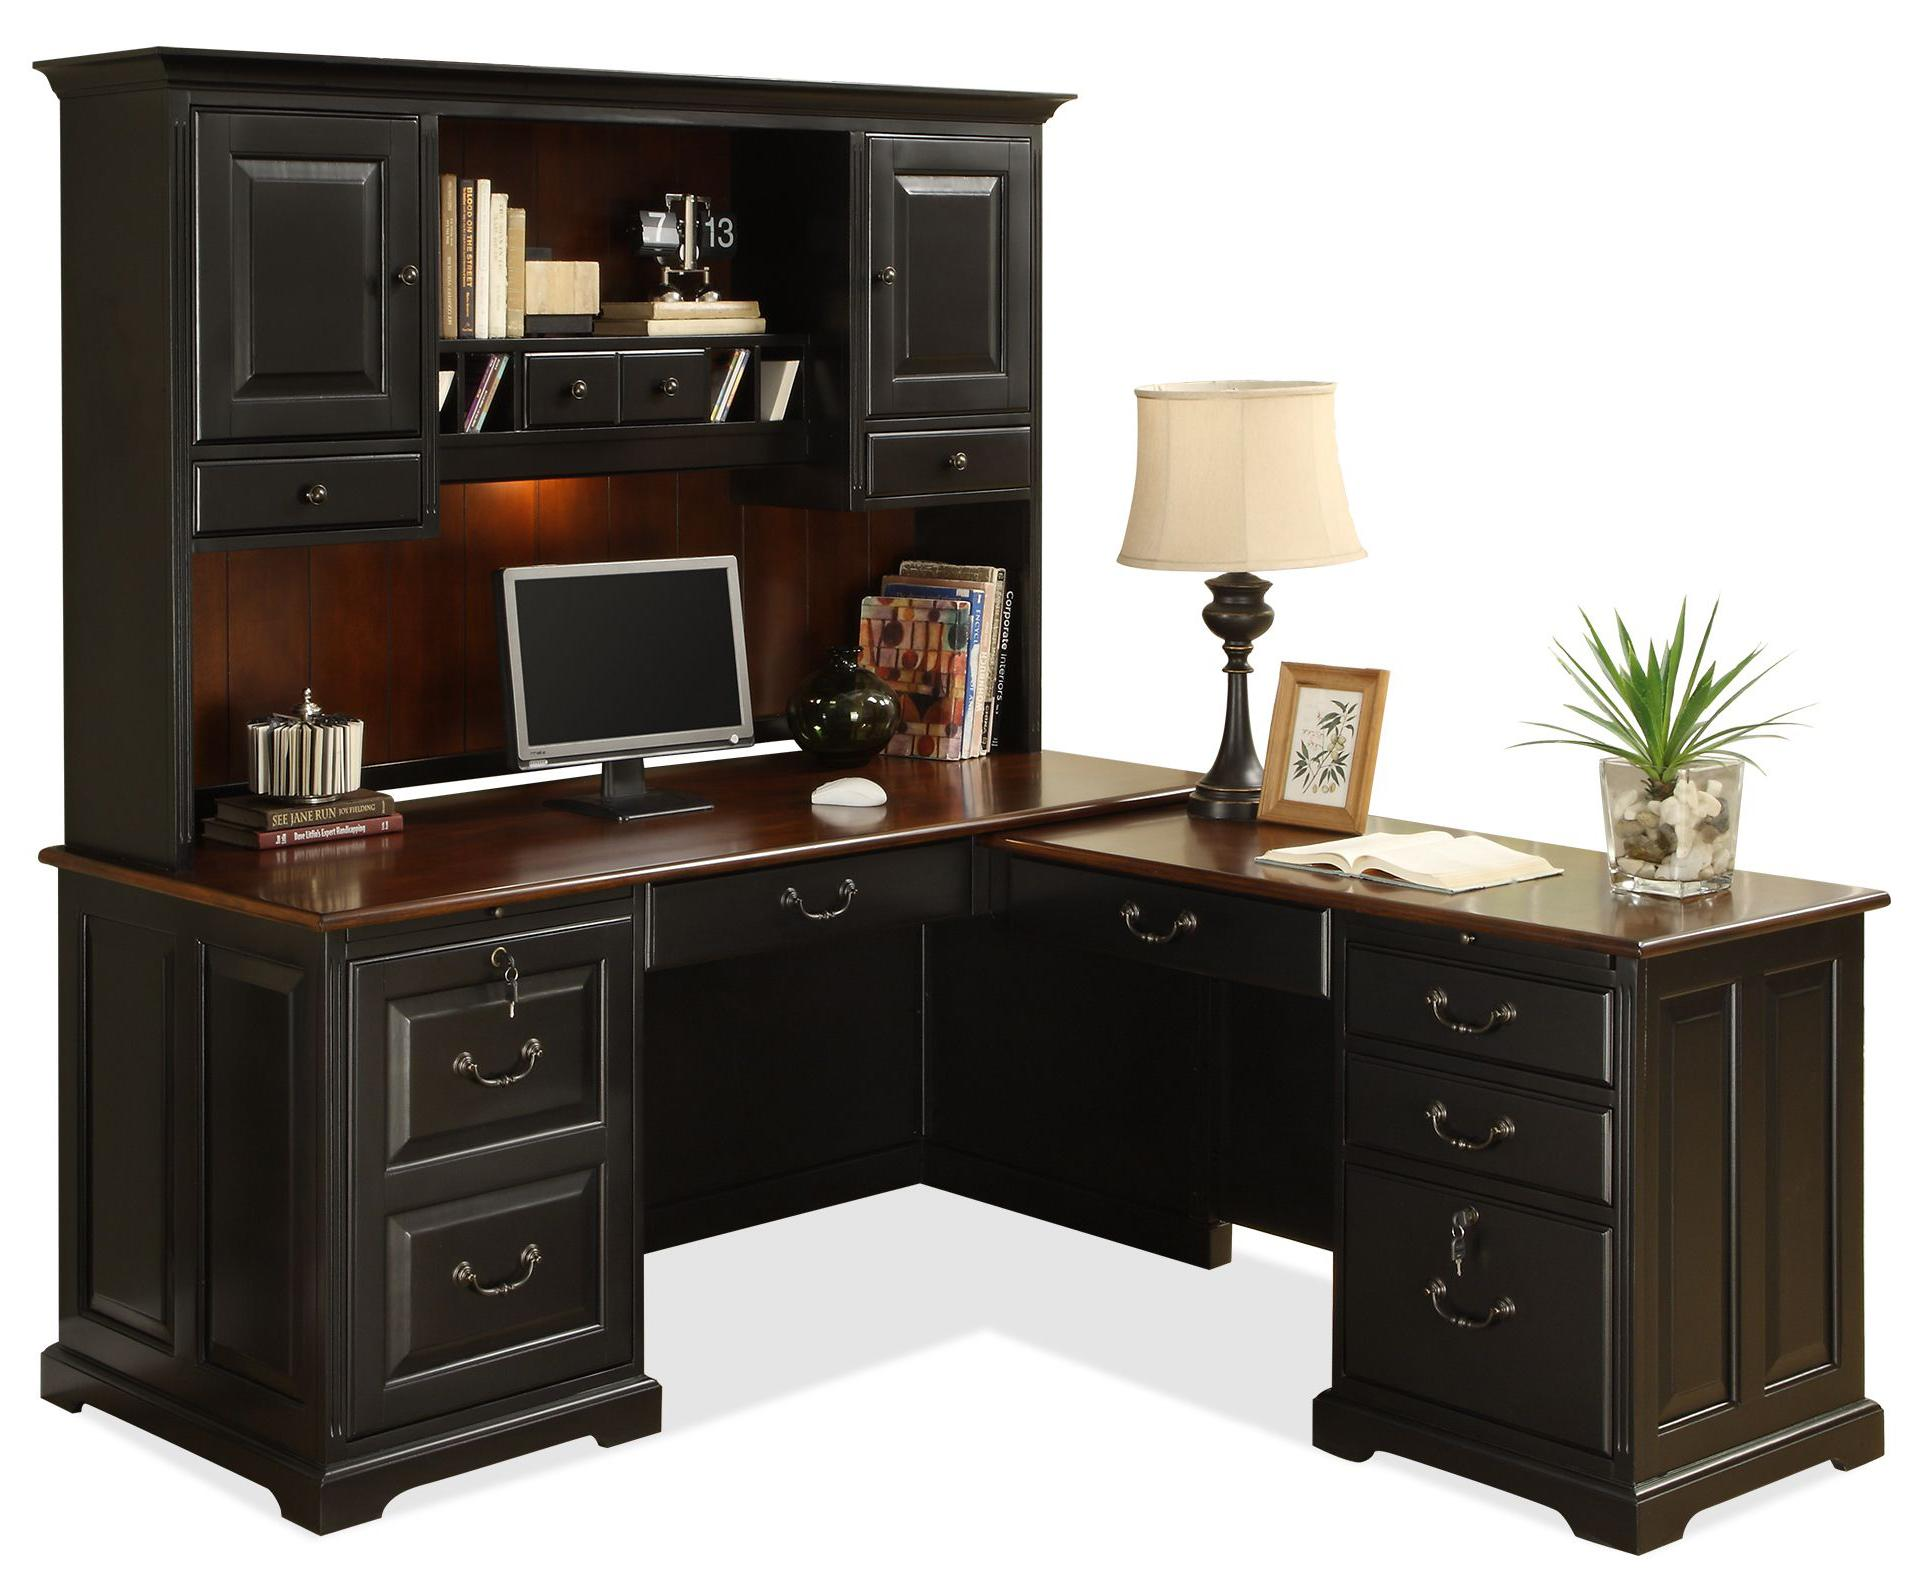 L Shape Computer Workstation Desk with Hutch. L Shape Computer Workstation Desk with Hutch by Riverside